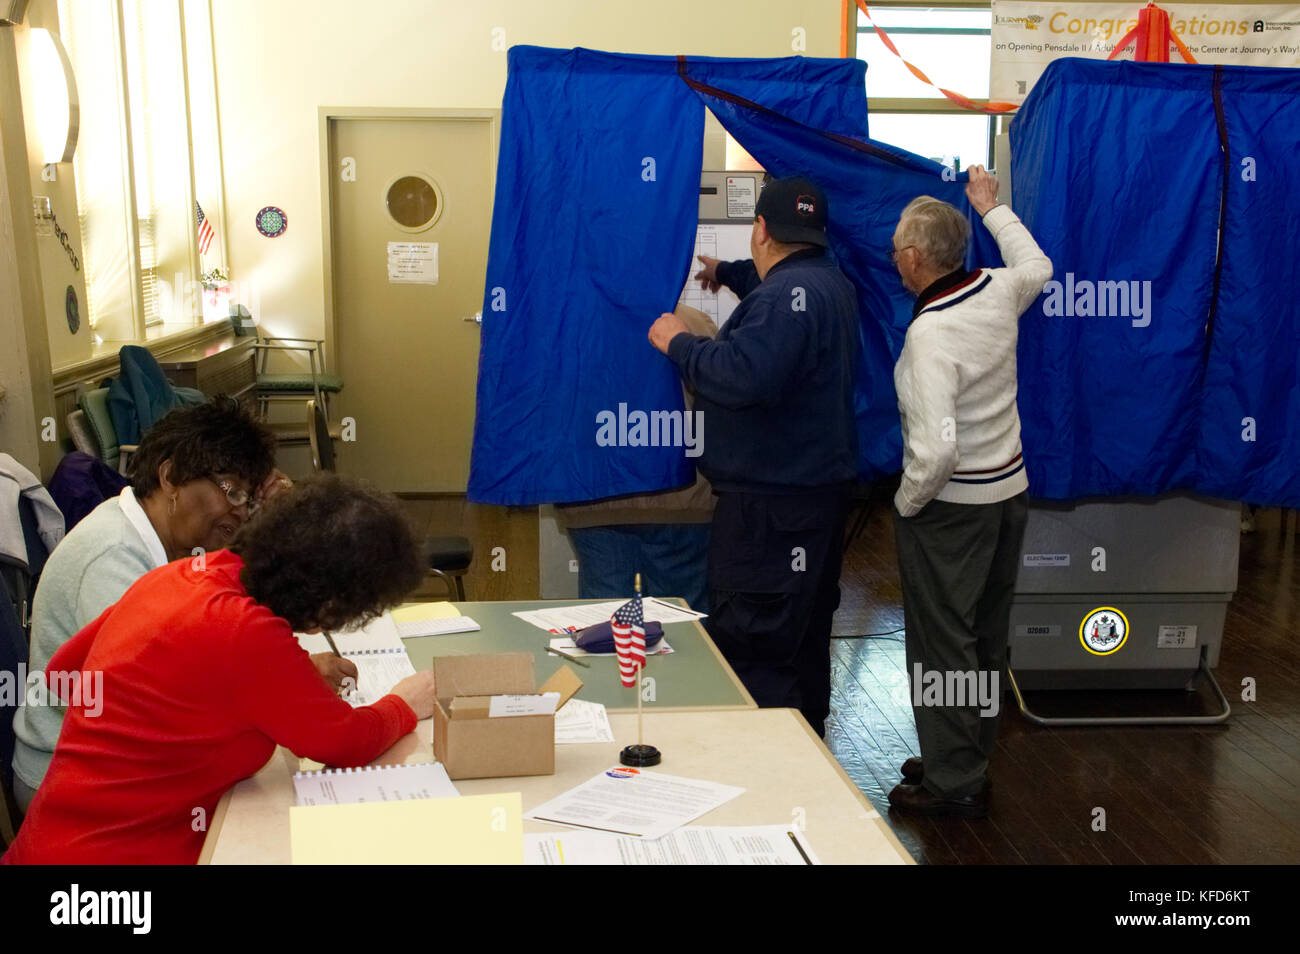 Electronic voting machines at a polling station in Philadelphia, PA. - Stock Image